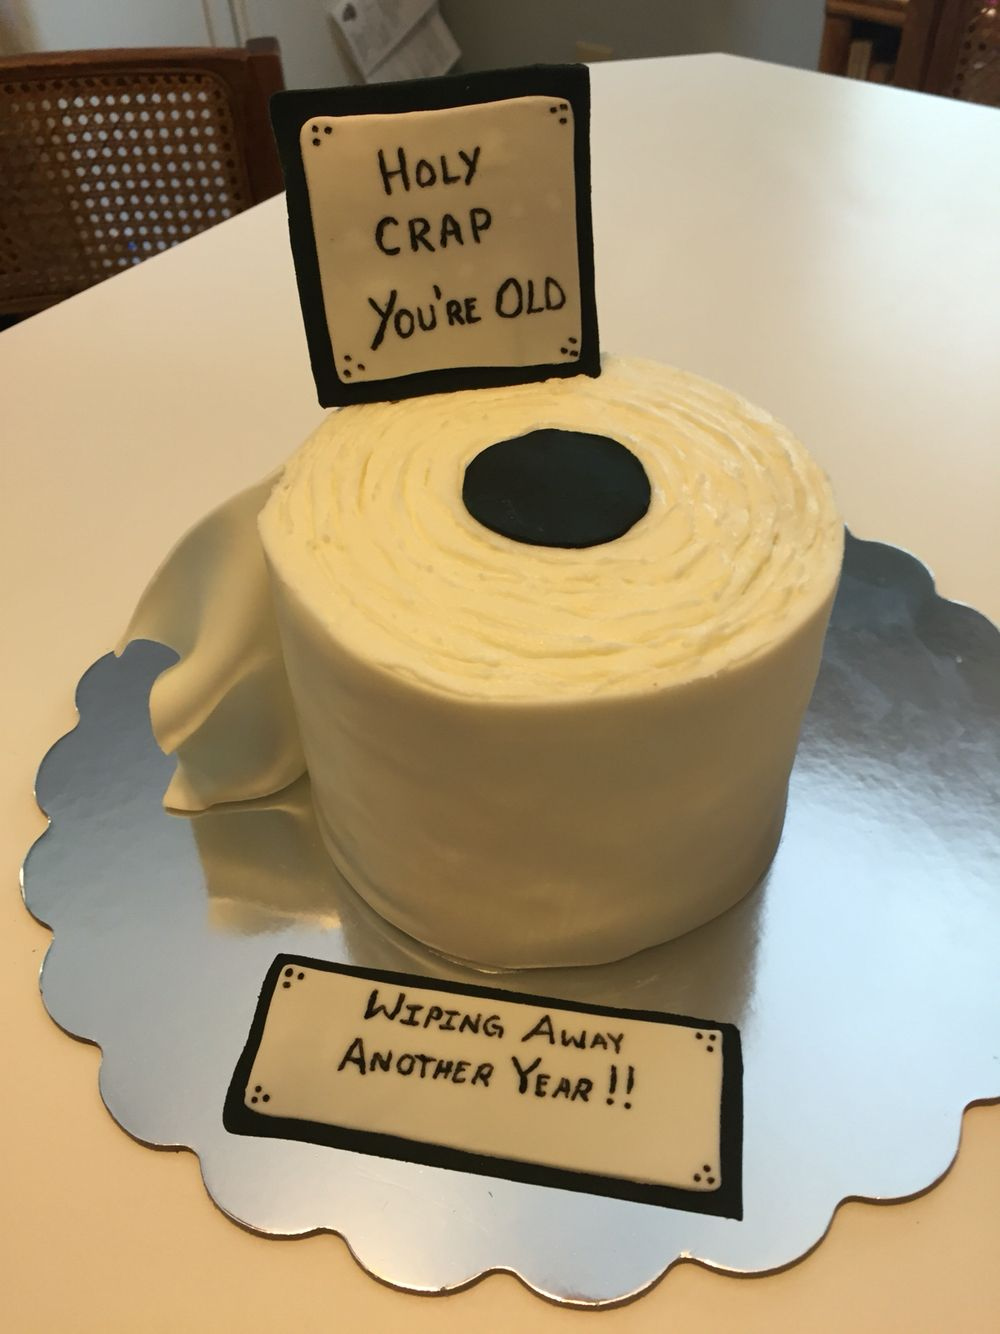 Toilet paper roll cake for a friend's 40th birthday.